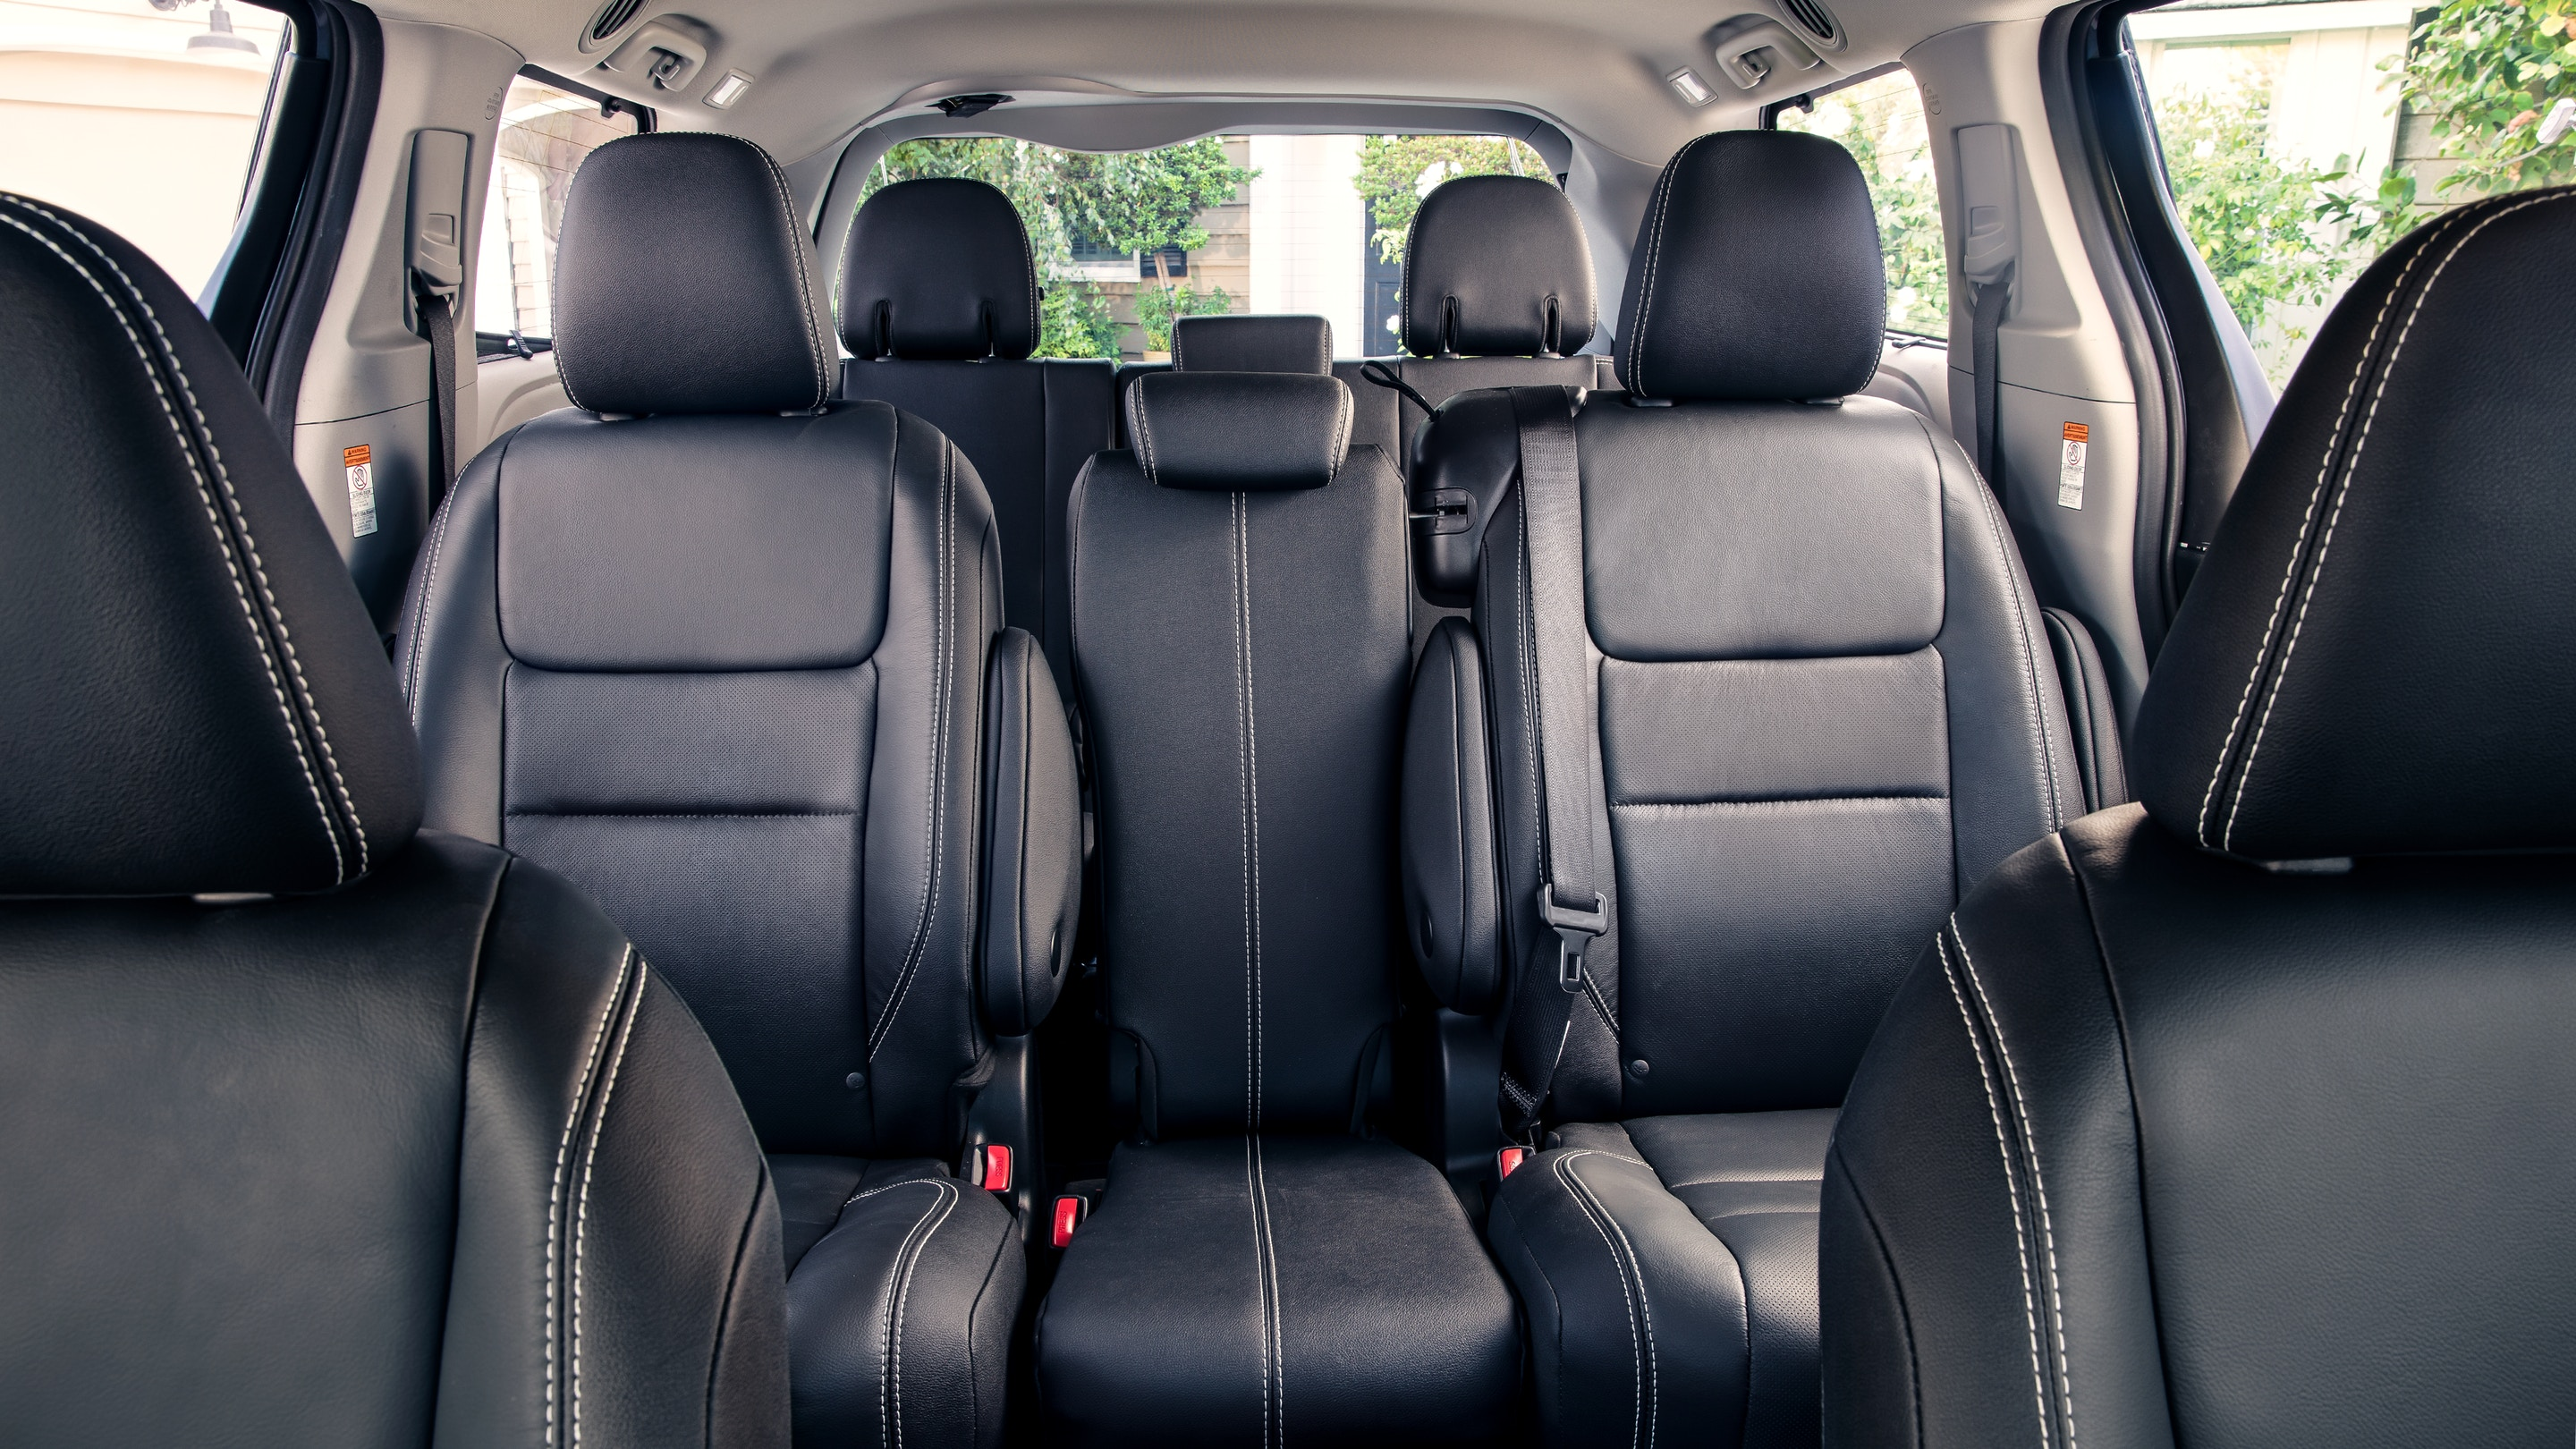 Safety For All in the Toyota Sienna